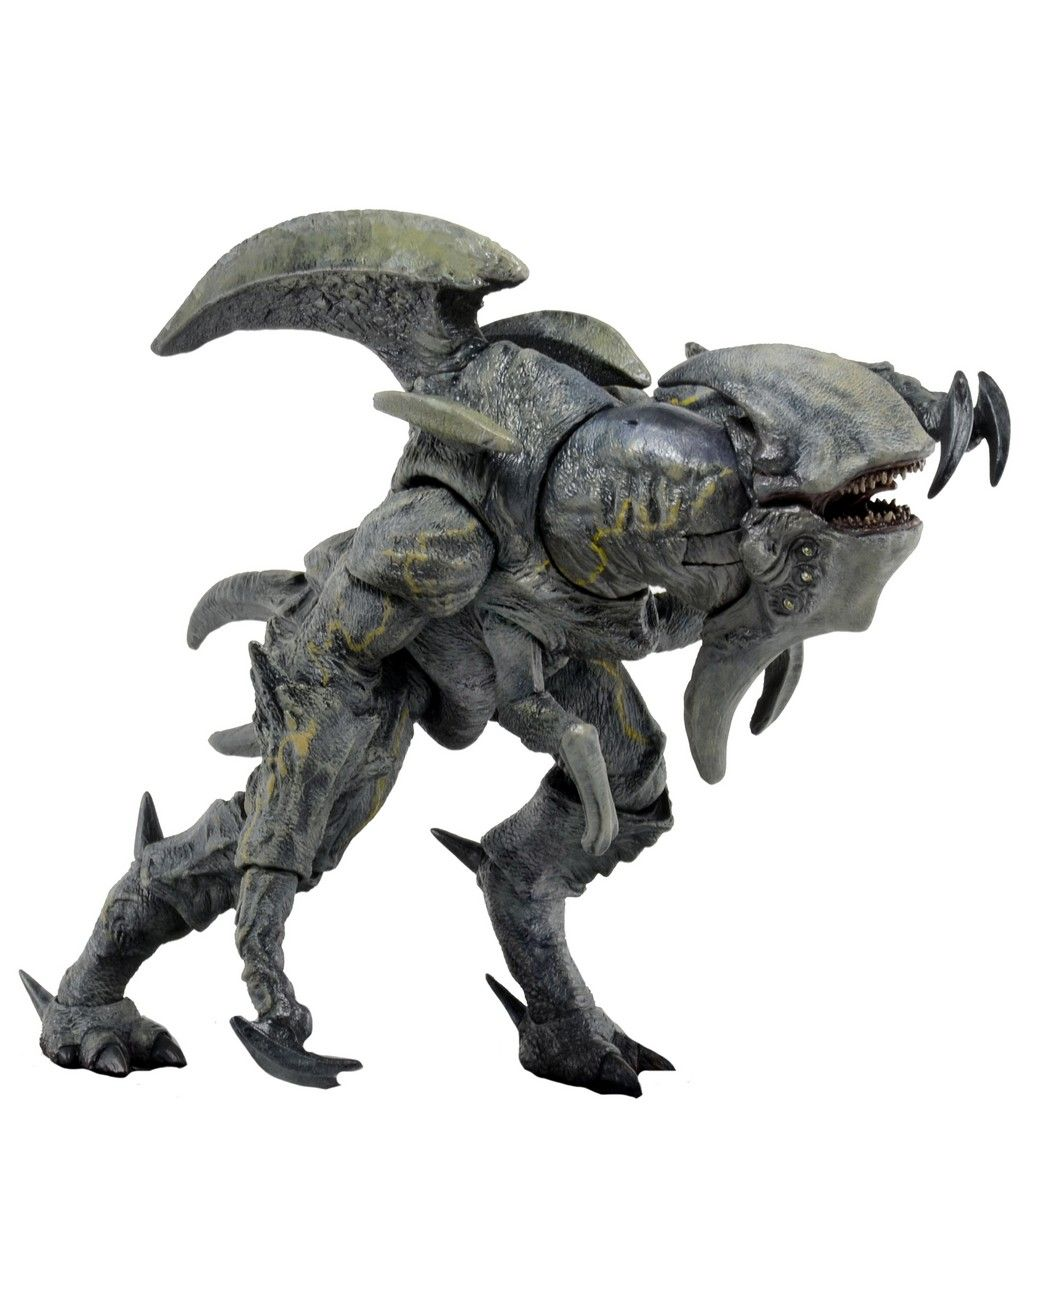 The Pacific Rim Toy Line Finally Made The Best Jaeger Toy Pacific Rim Kaiju Pacific Rim Kaiju It flies like a ball of thunder and its cry sounds like thunder. the pacific rim toy line finally made